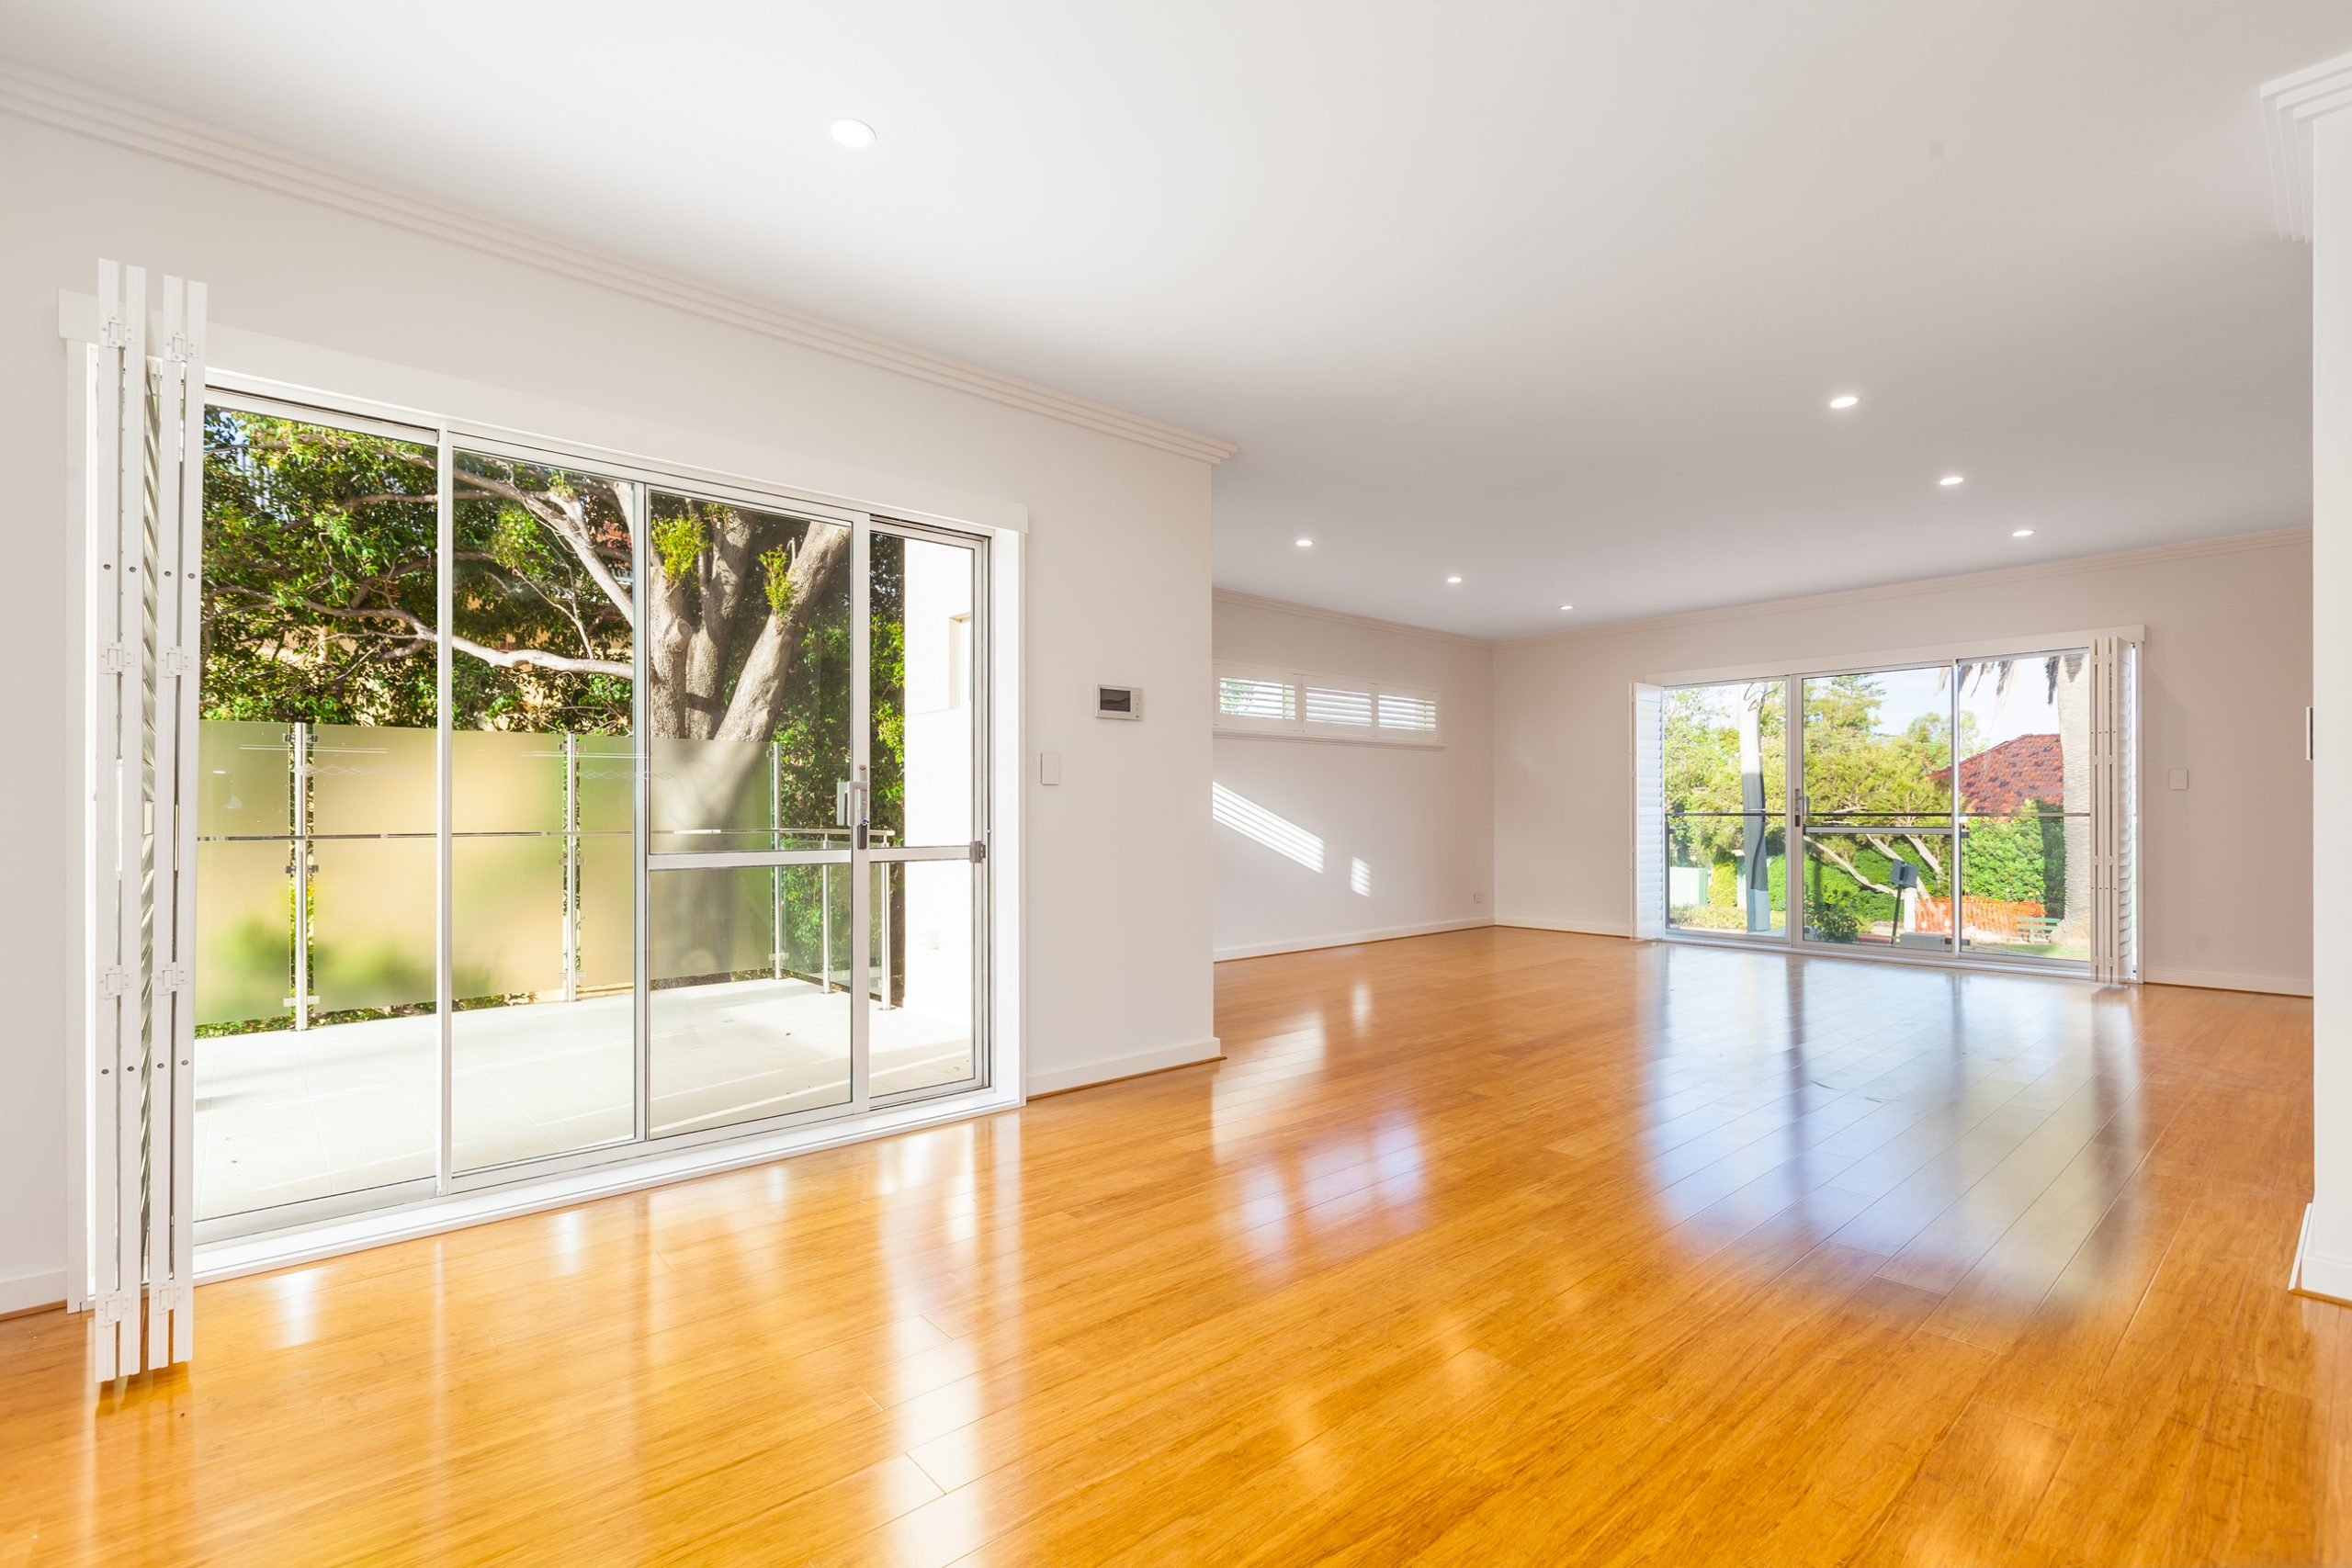 Nedland empty living area with glossy timber flooring, white-painted walls and sliding doors